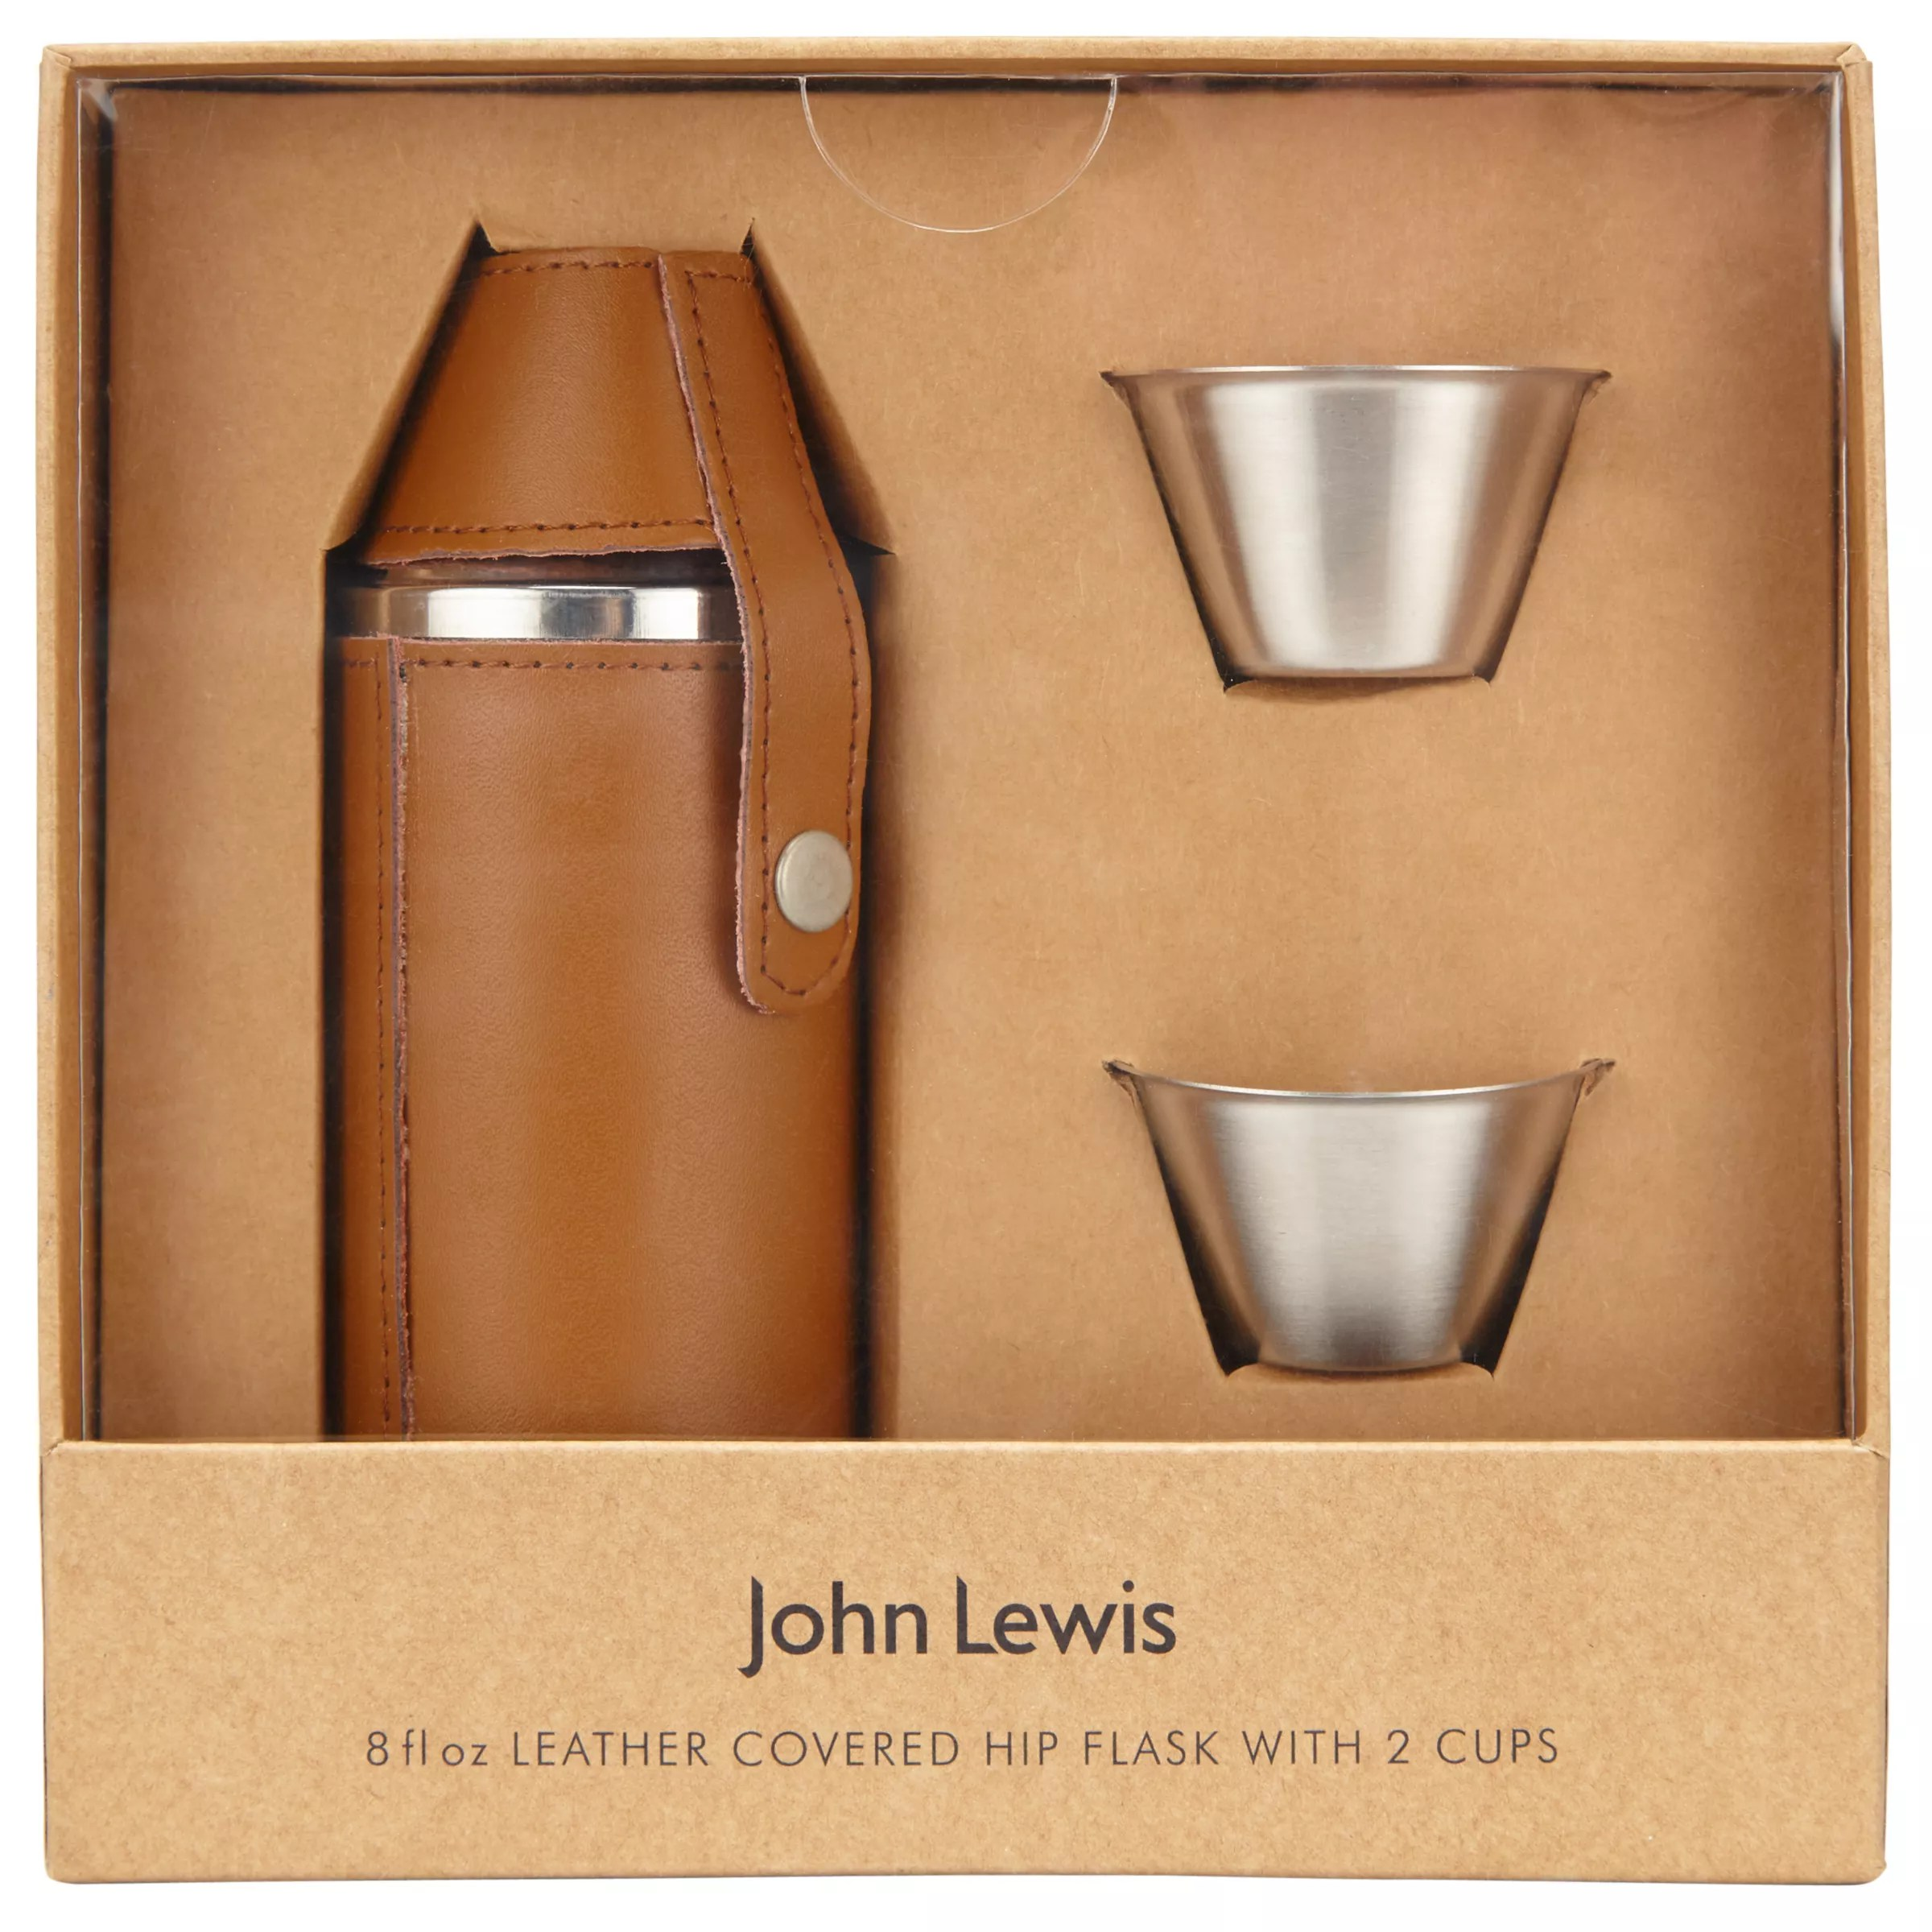 Top Gift Ideas For Men Presents For Men John Lewis